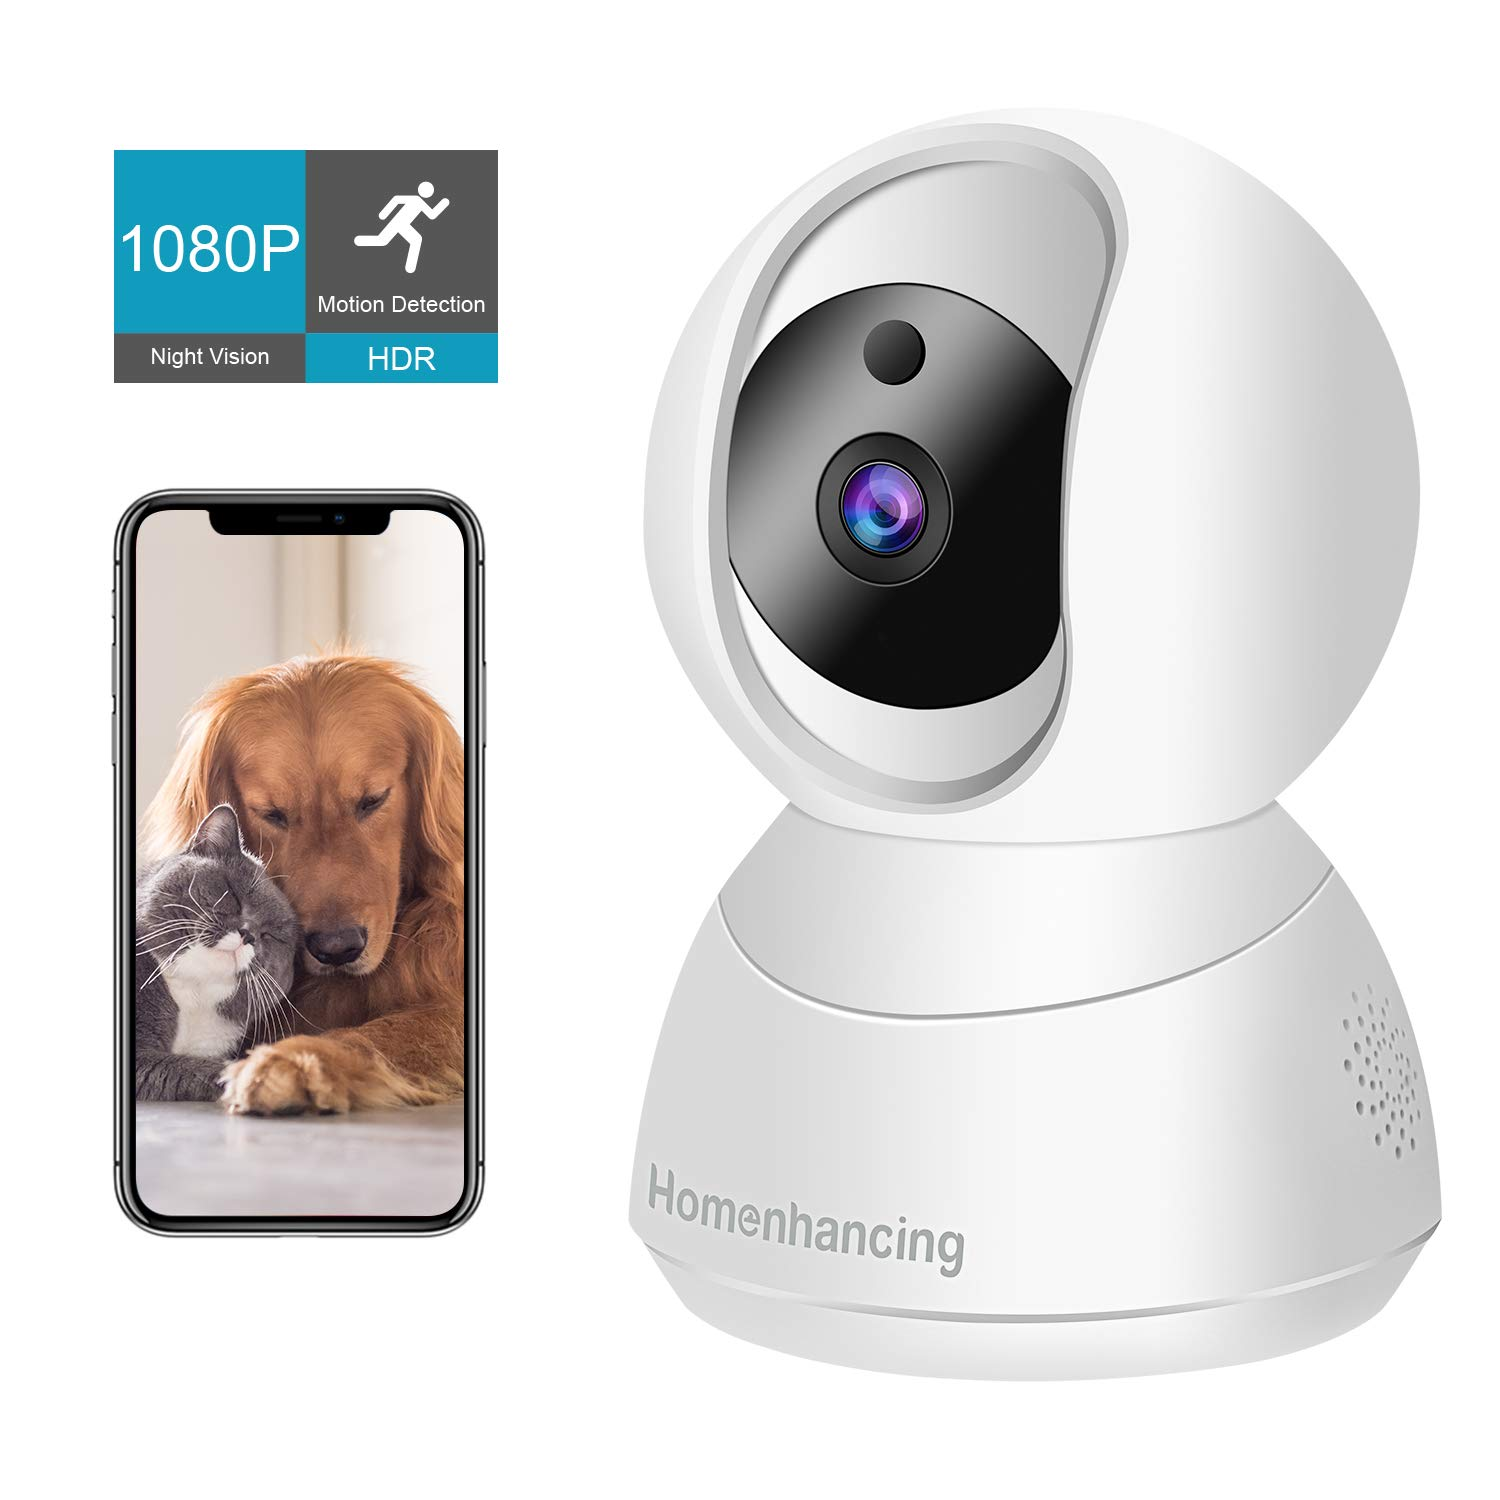 Wireless Pet Camera 1080P FHD, WiFi Dog Camera and Two Way Audio, Indoor Cat Camera and Motion Tracking/Detection, Night Vision, IP Camera Pan/Tilt/Zoom, Cloud Storage/Micro SD Card, iOS/Android by Homenhancing